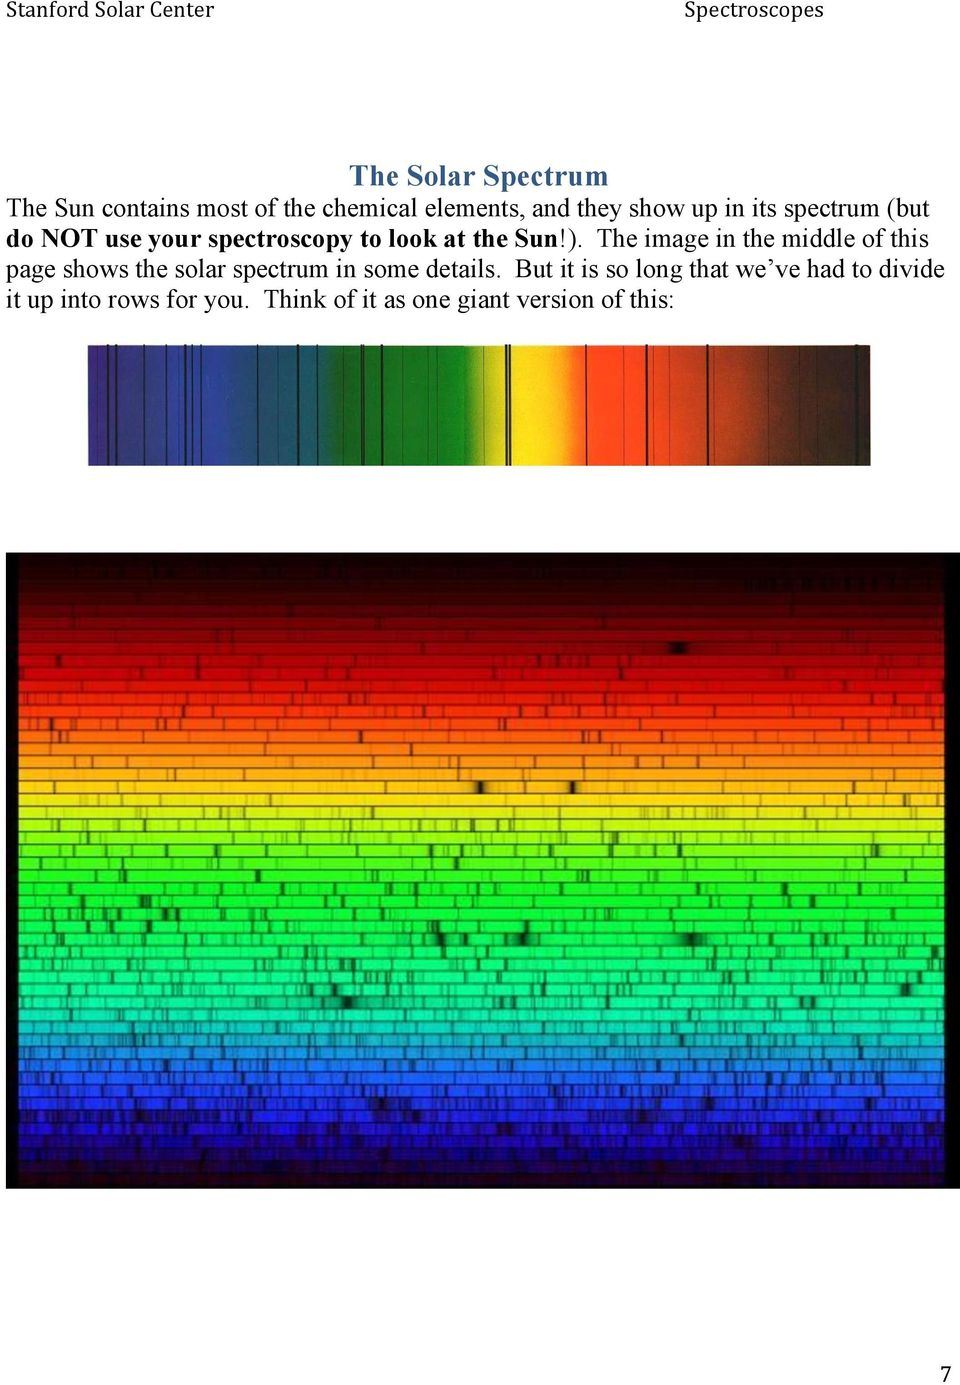 The image in the middle of this page shows the solar spectrum in some details.